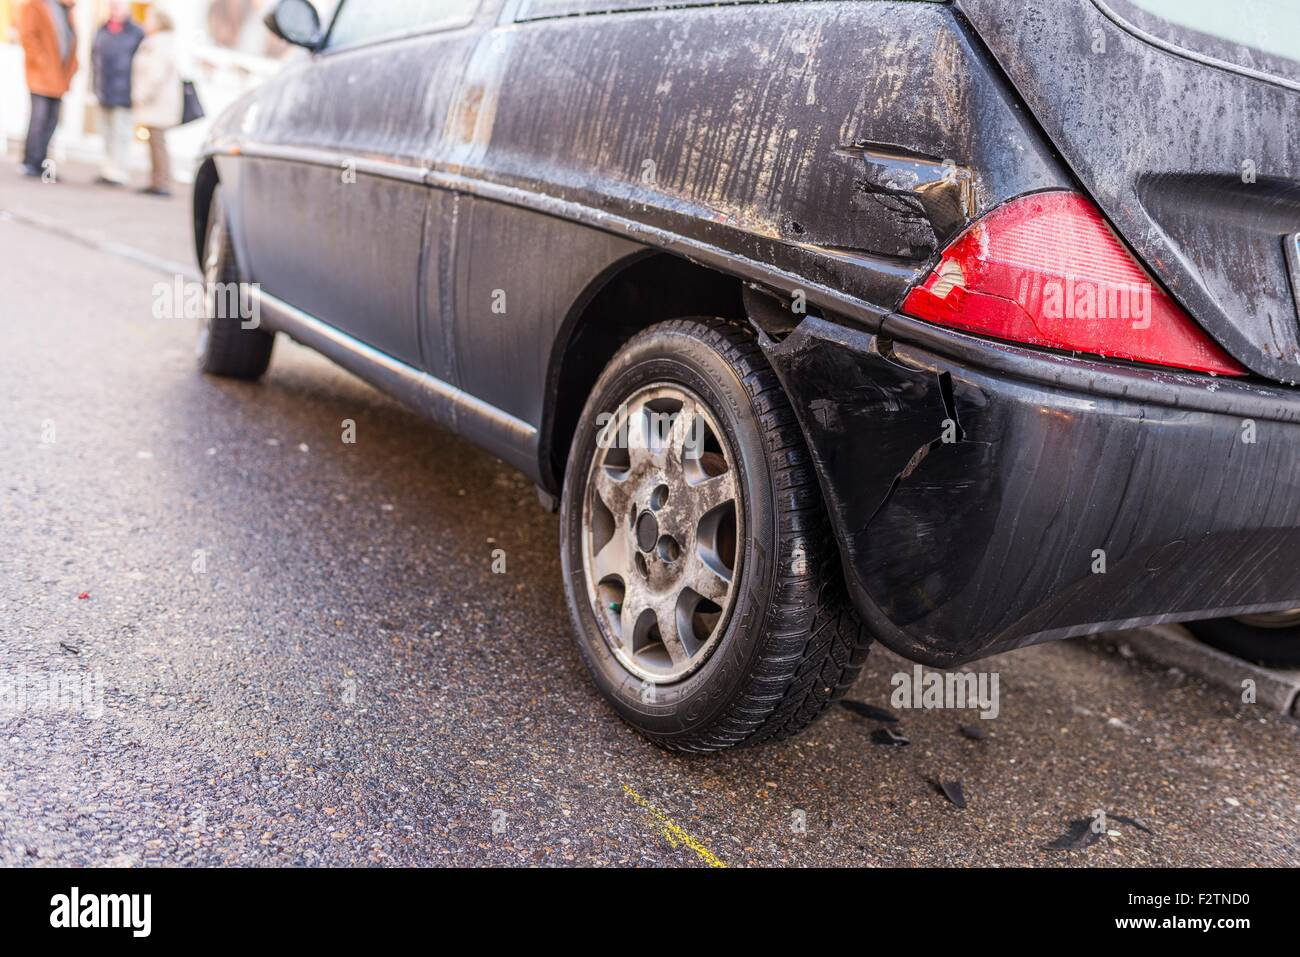 Accident, damage to a parked car, Germany - Stock Image